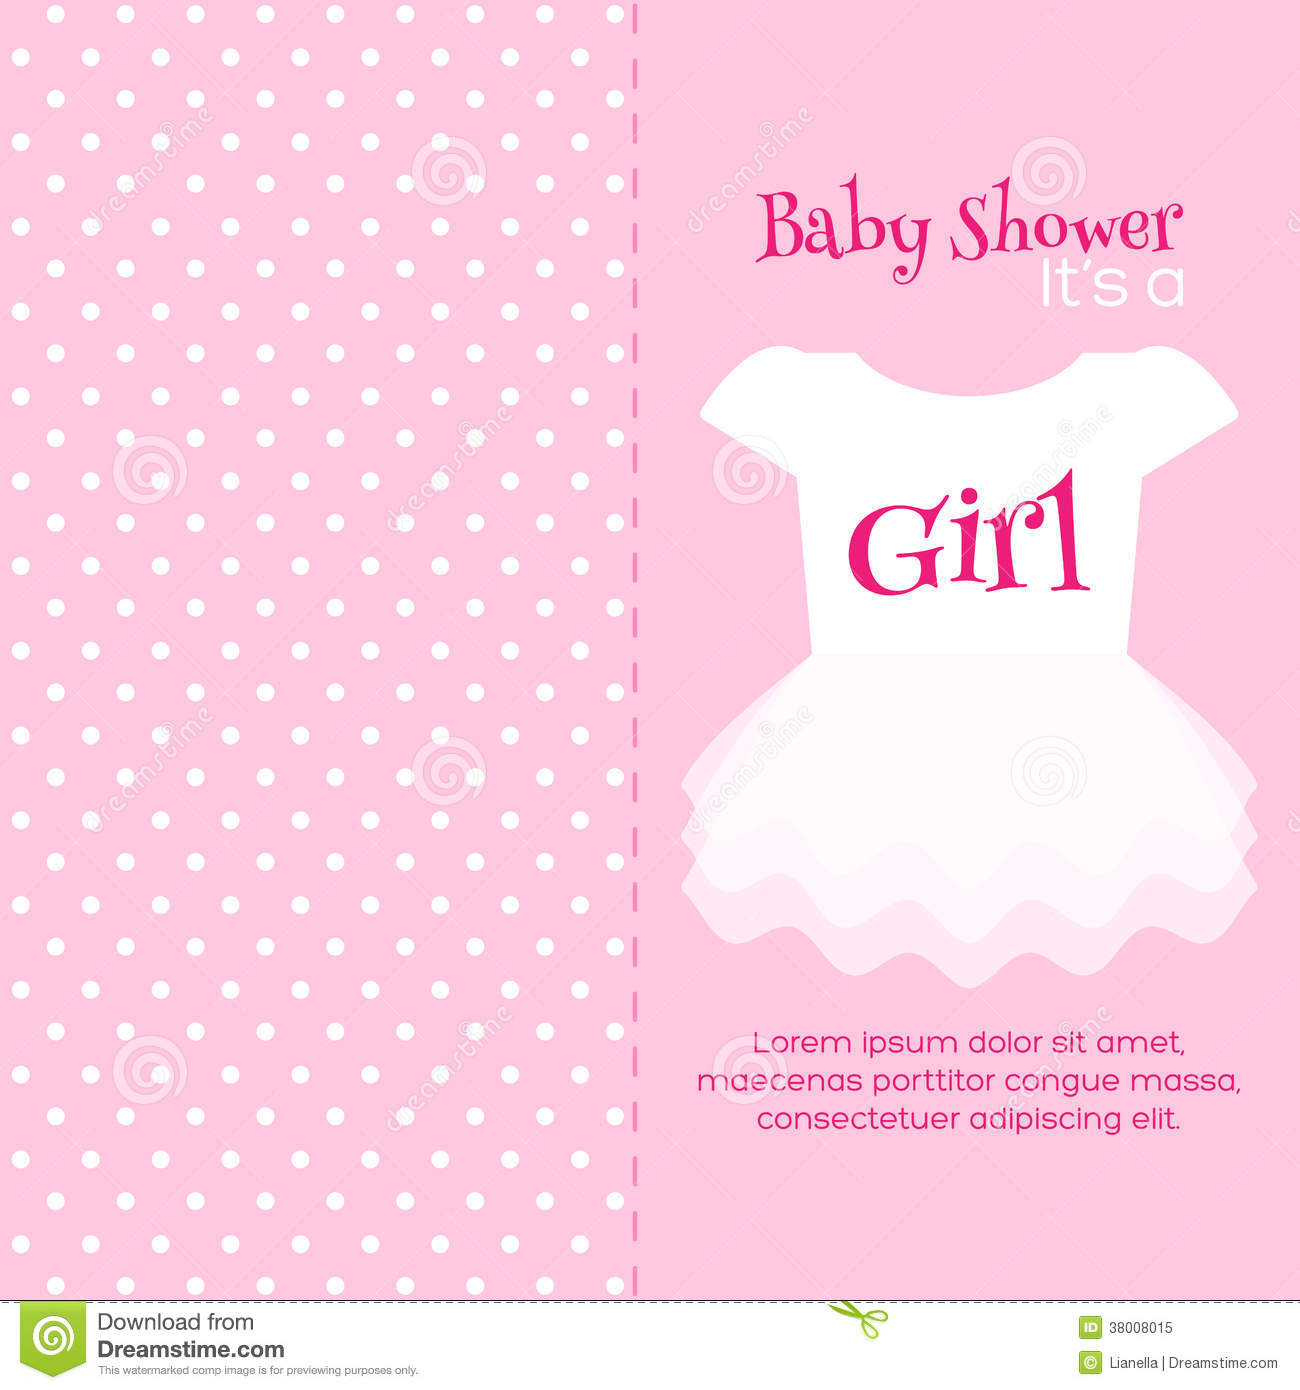 Baby Shower Invitation Template Stock Vector Illustration Of - Pink baby shower invitation templates